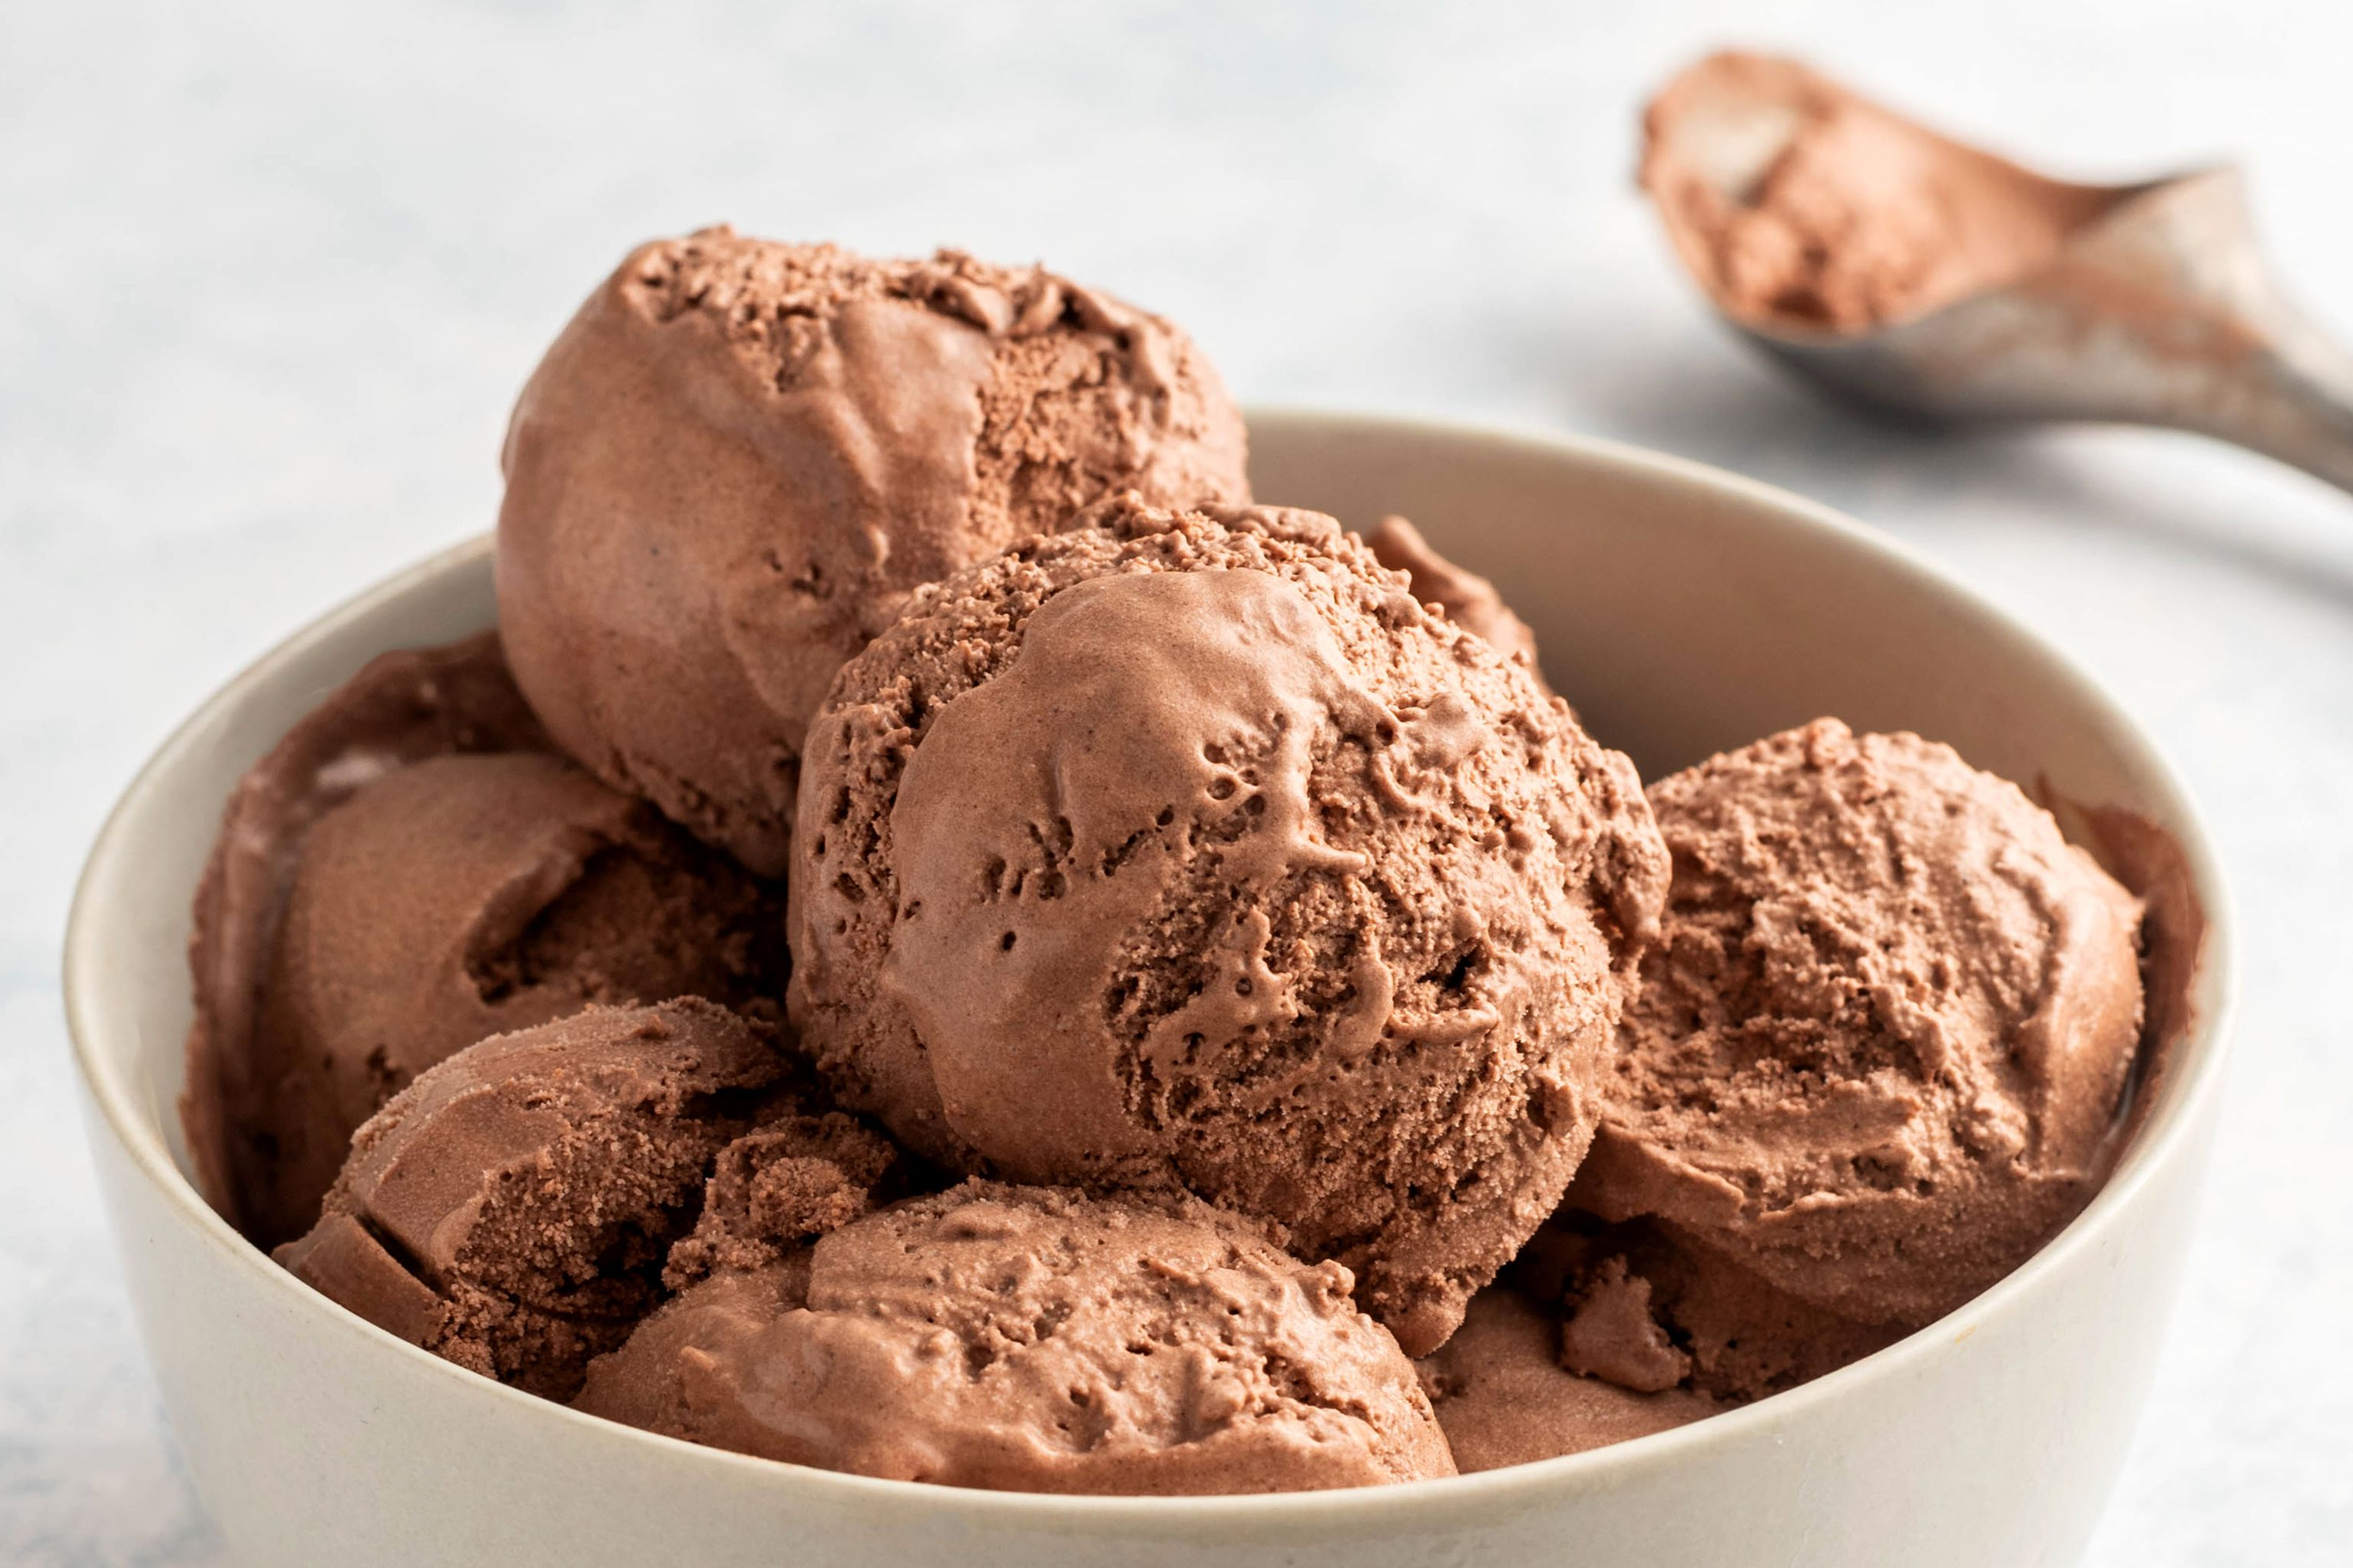 Easy No Cook Homemade Chocolate Ice Cream Recipe